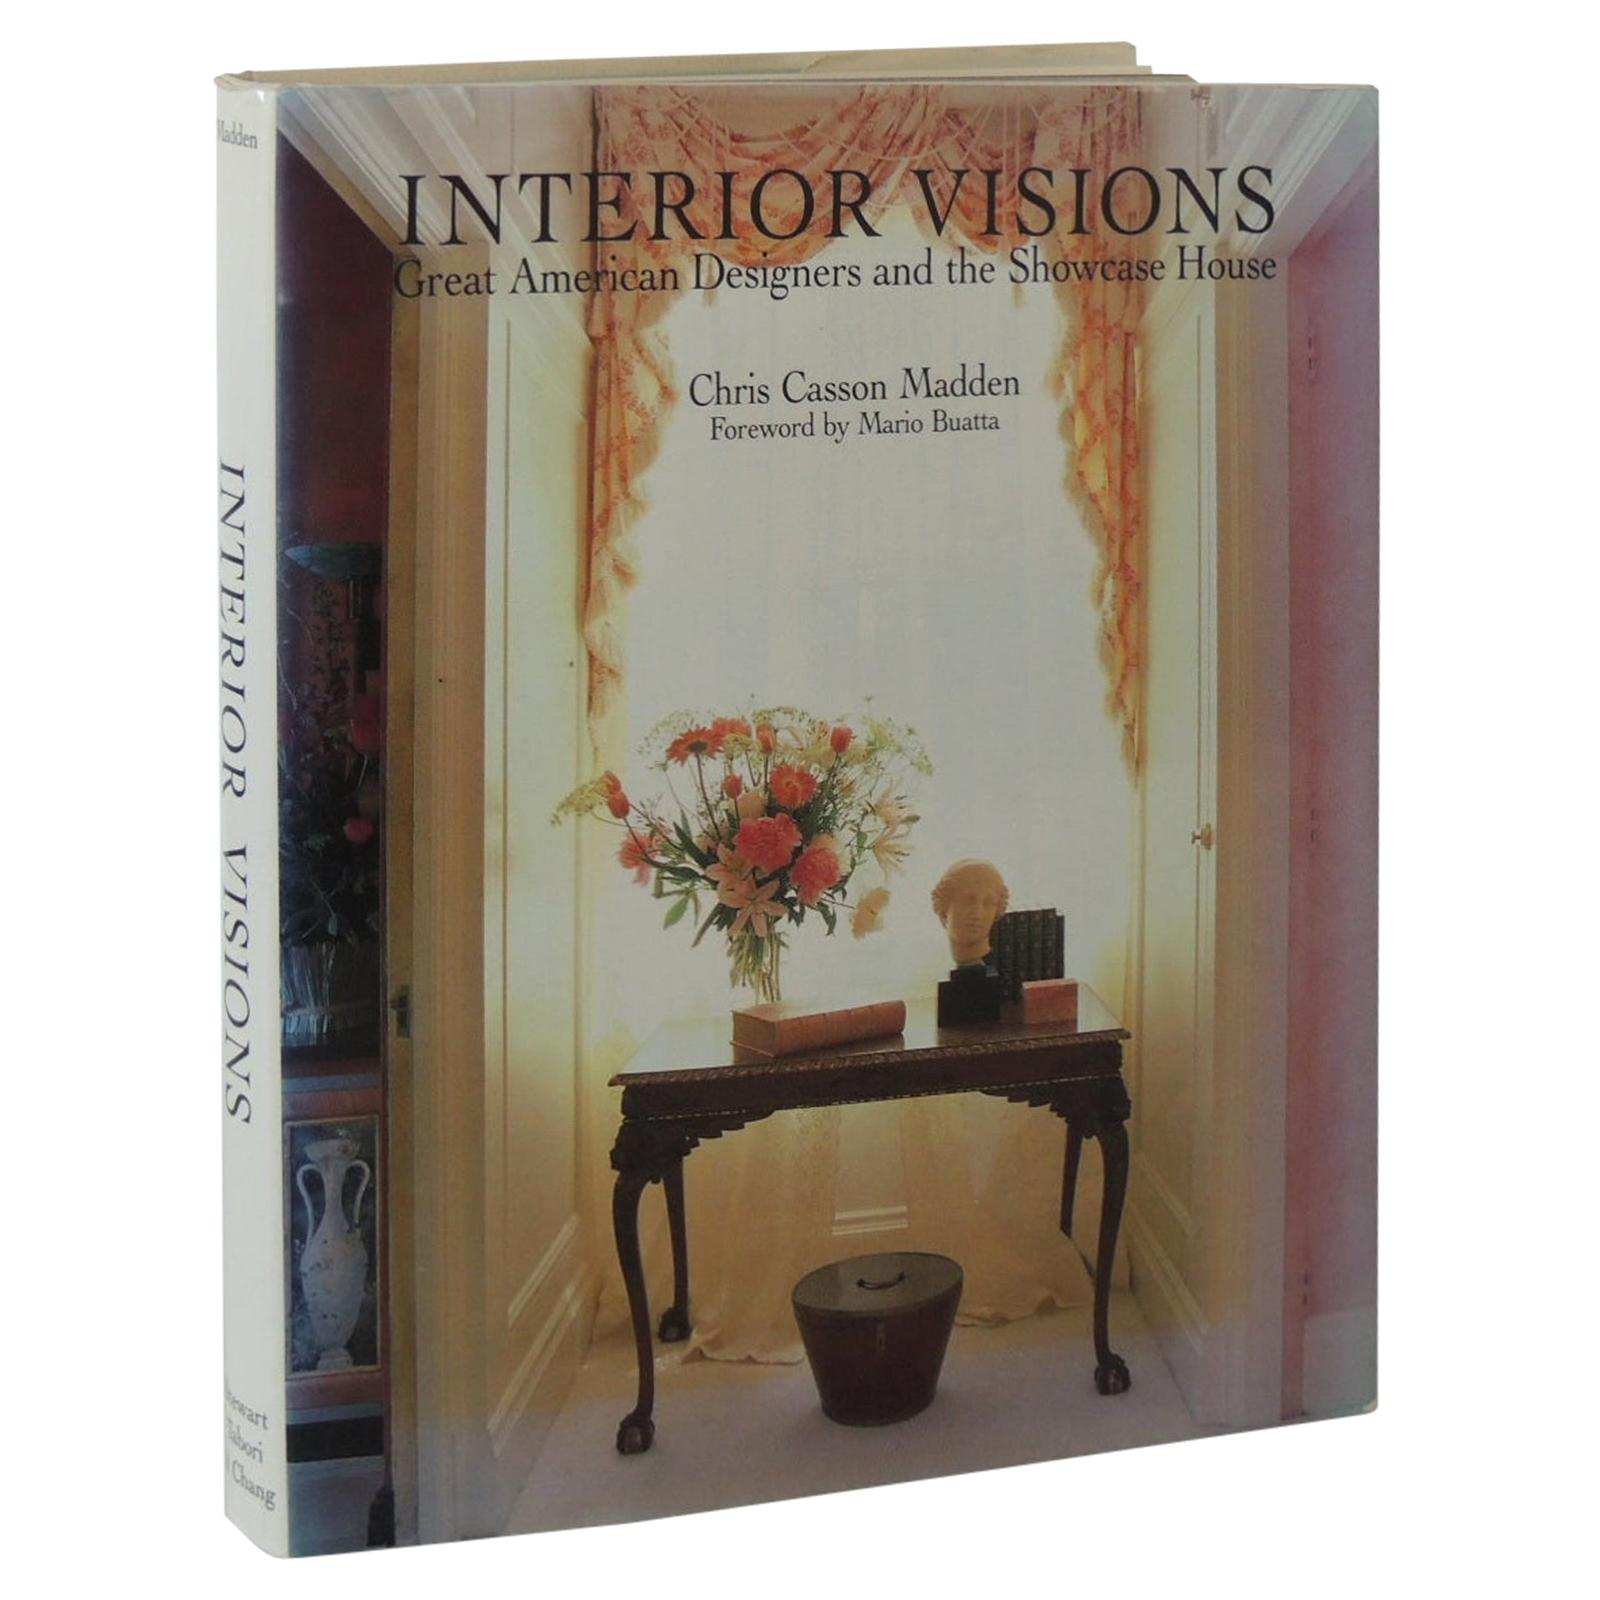 Interior Visions Vintage Decorative Hard-Cover Coffee Table Book